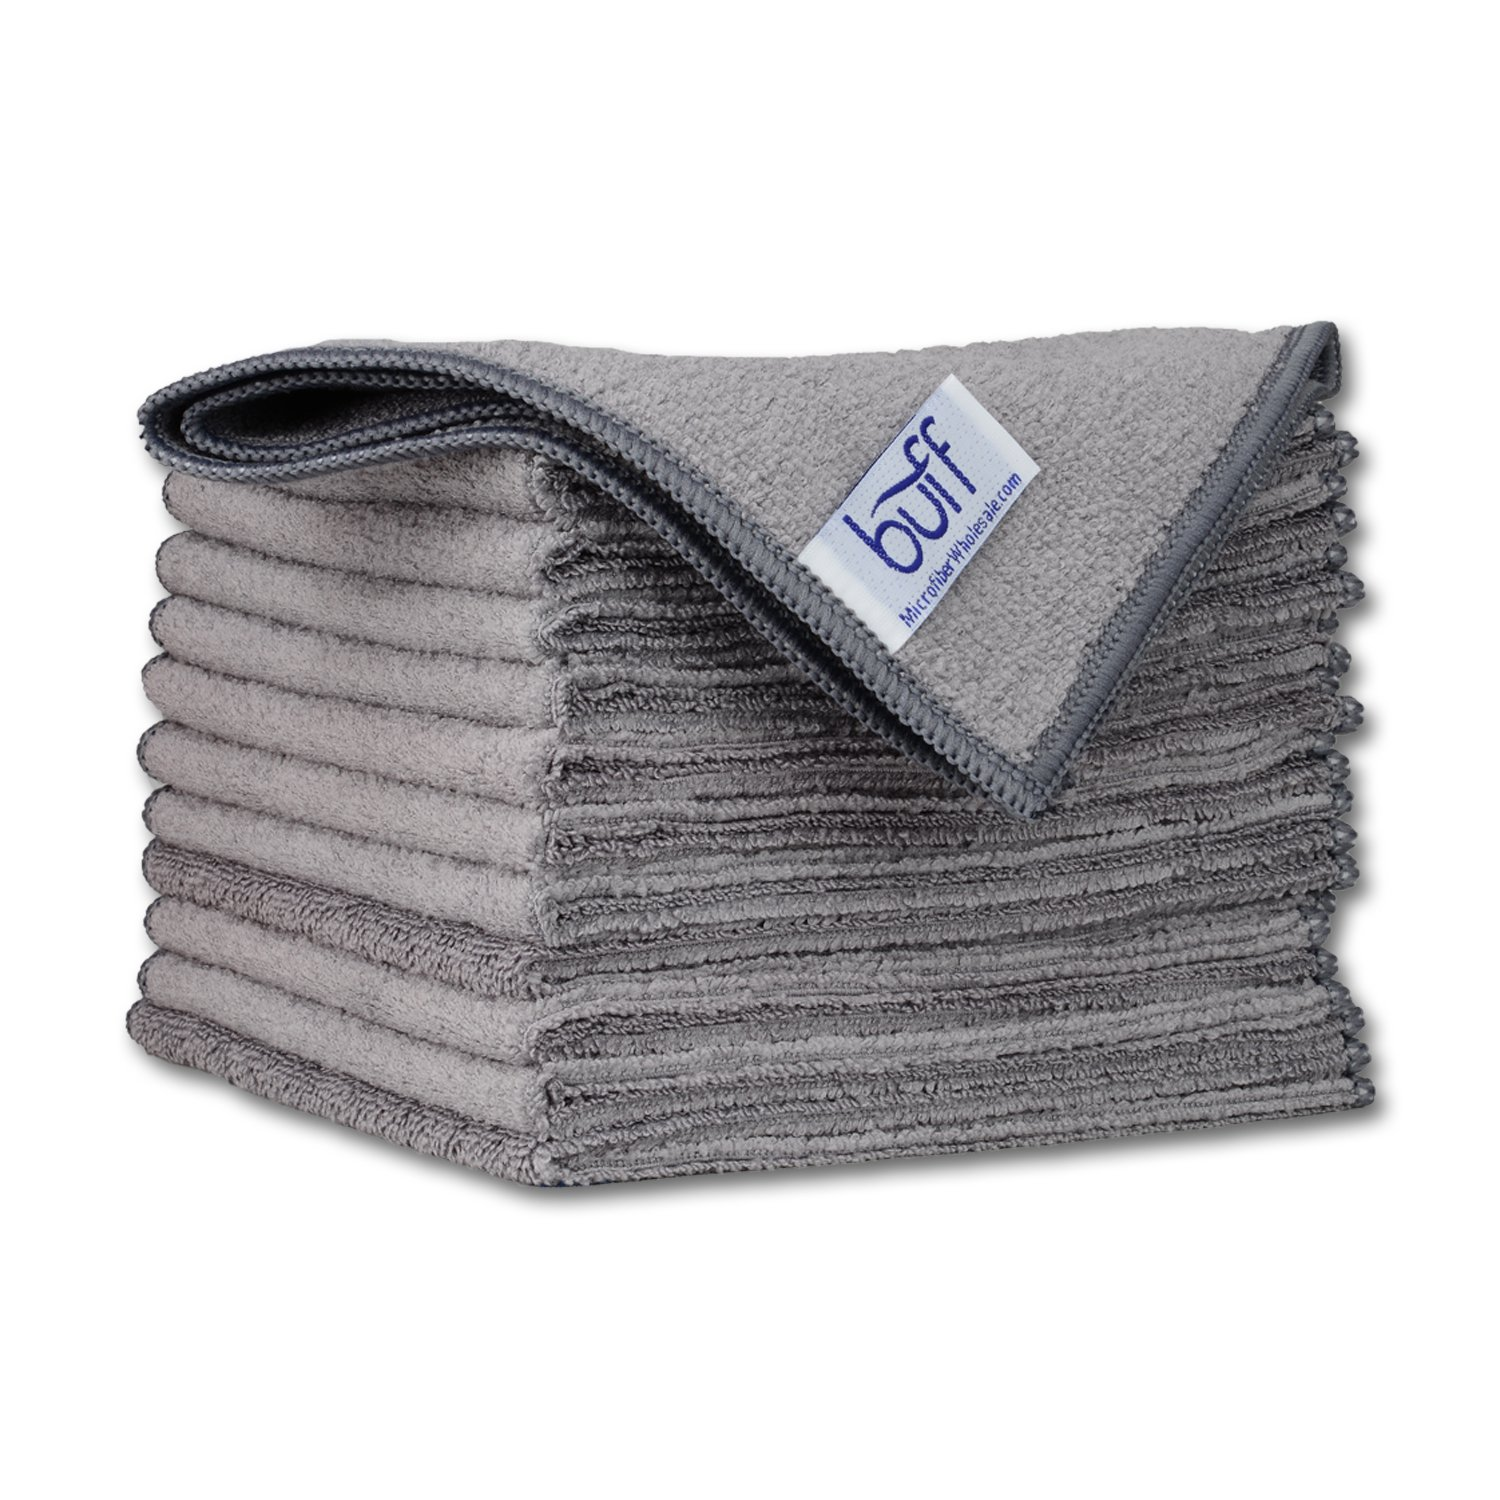 12 x 12 Buff Pro Multi-Surface Microfiber Towels | Gray Micro Cleaning Cloths - 12 Pack | Premium Microfibers For Cleaning Glass, Kitchens, Bathrooms, Automotive Microfiber Wholesale